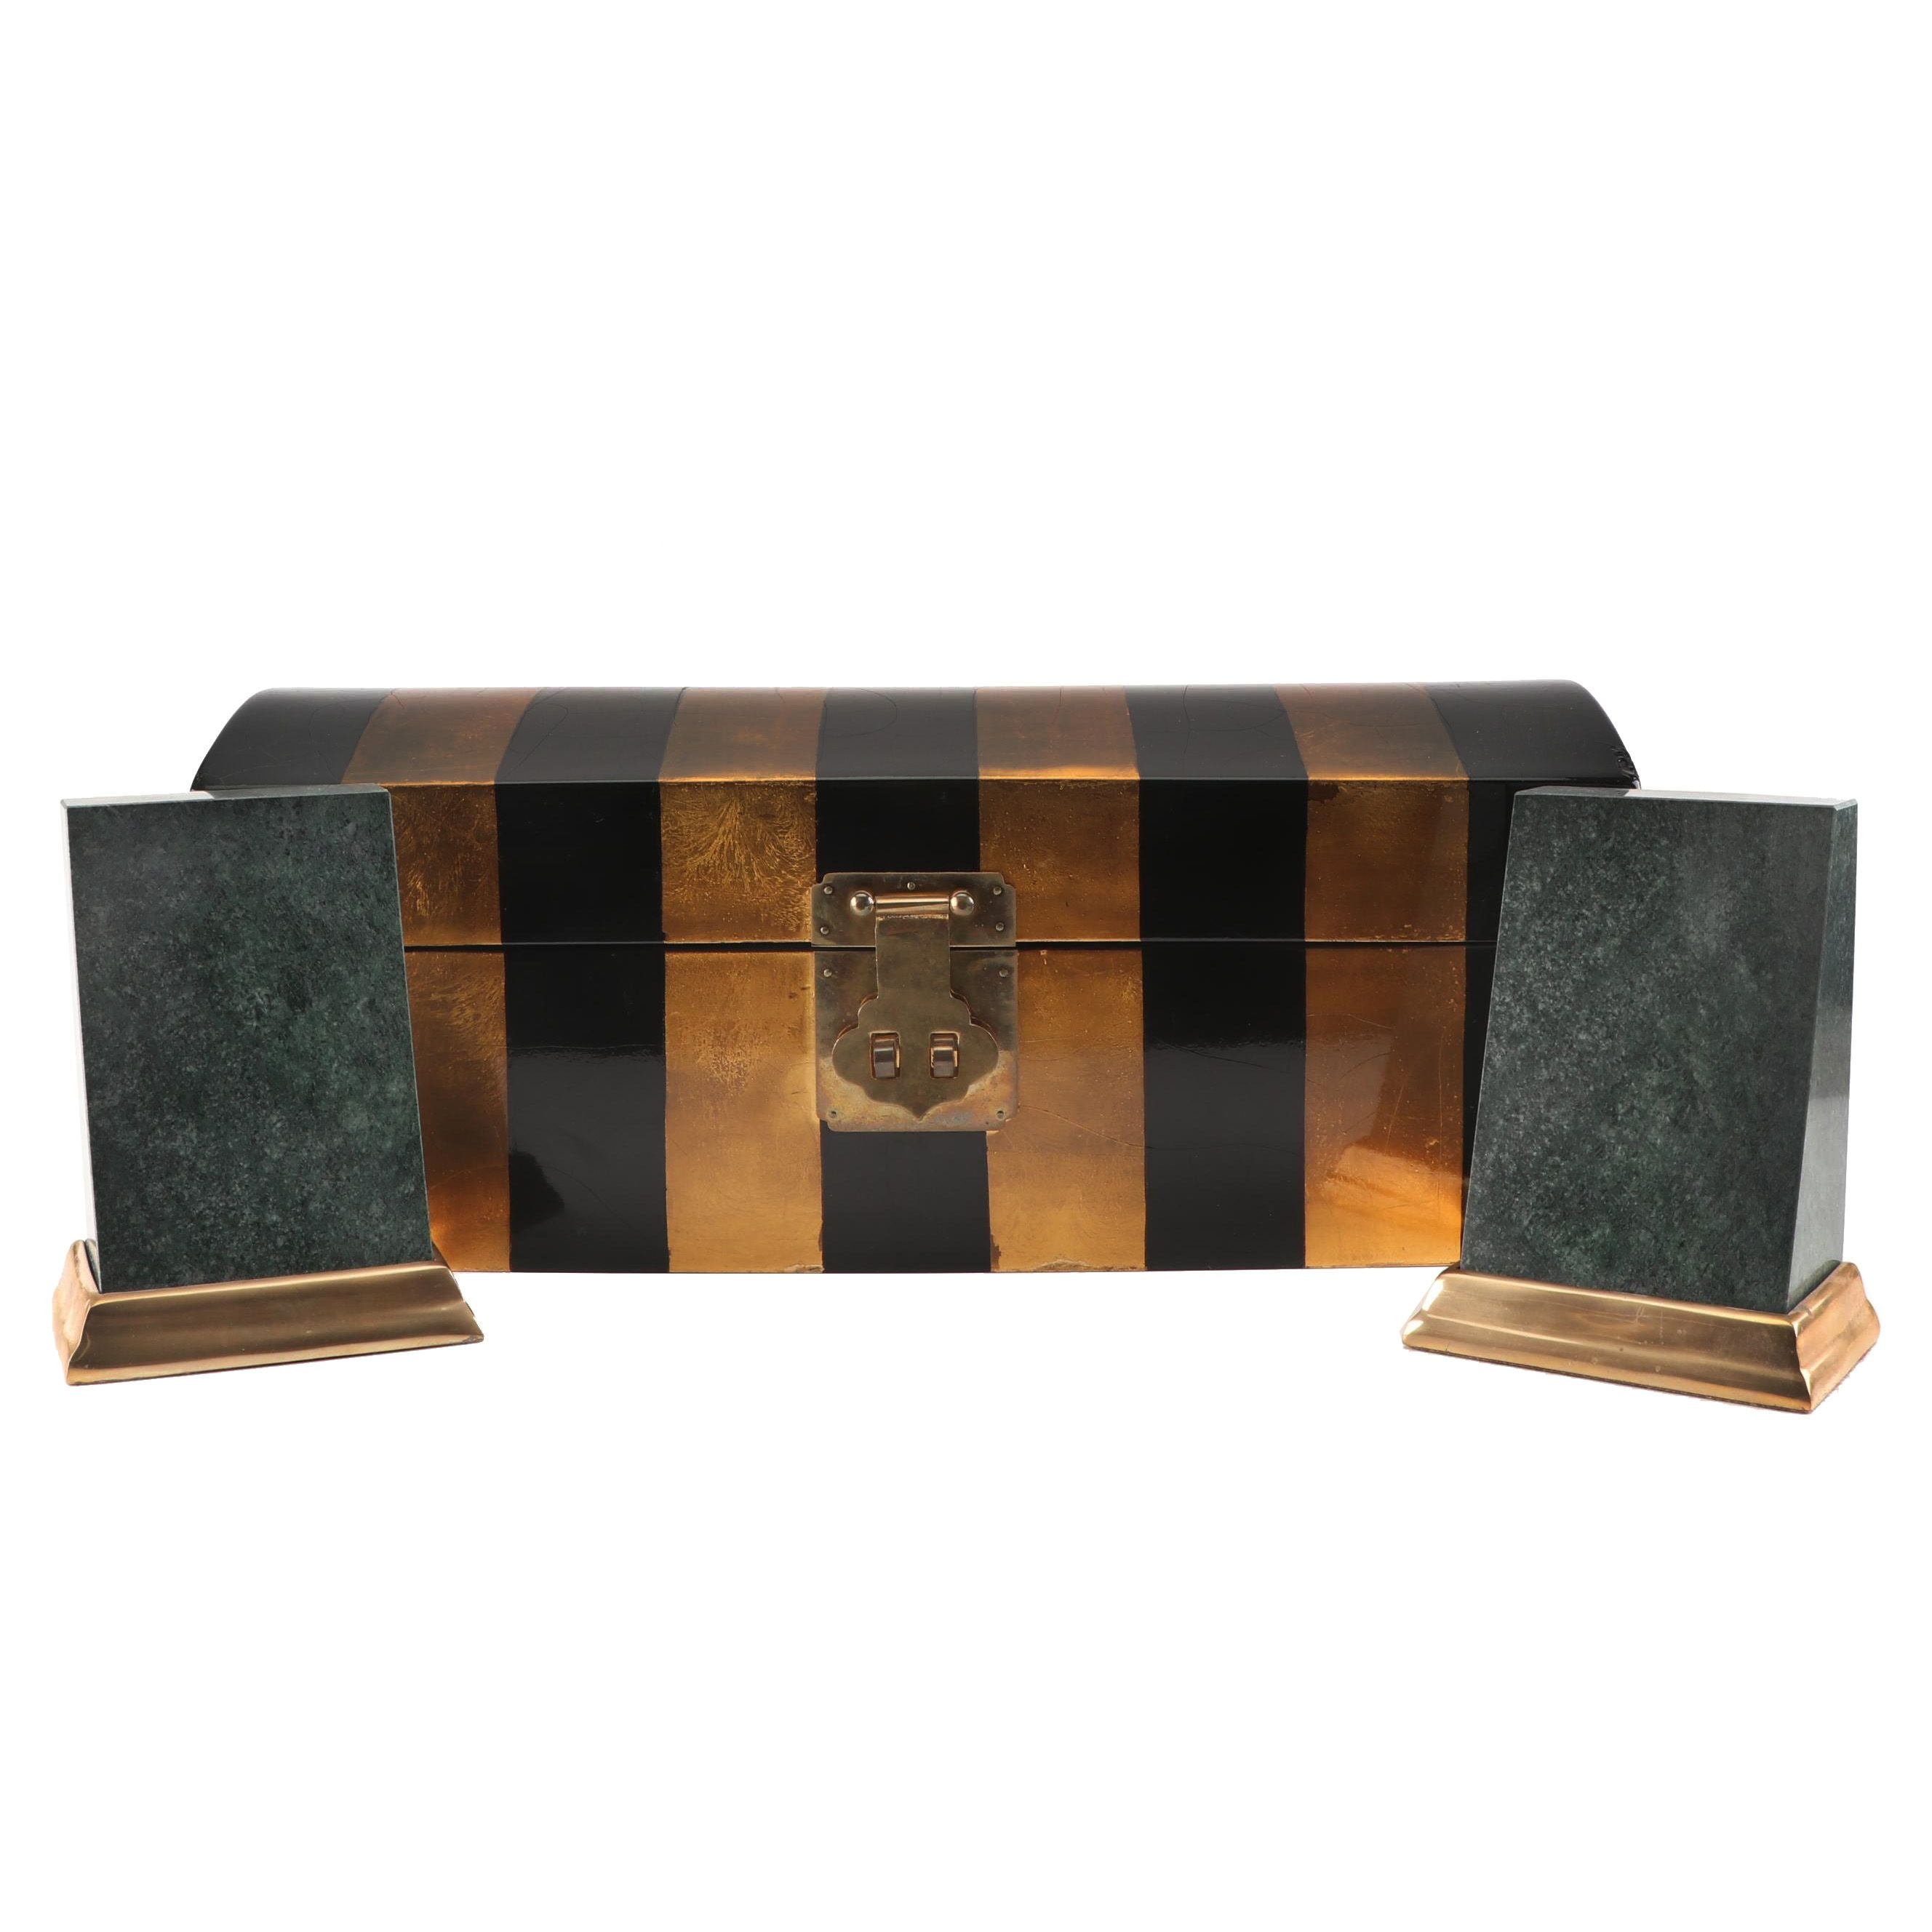 Decorative Lacquerware Chest with Granite Bookends